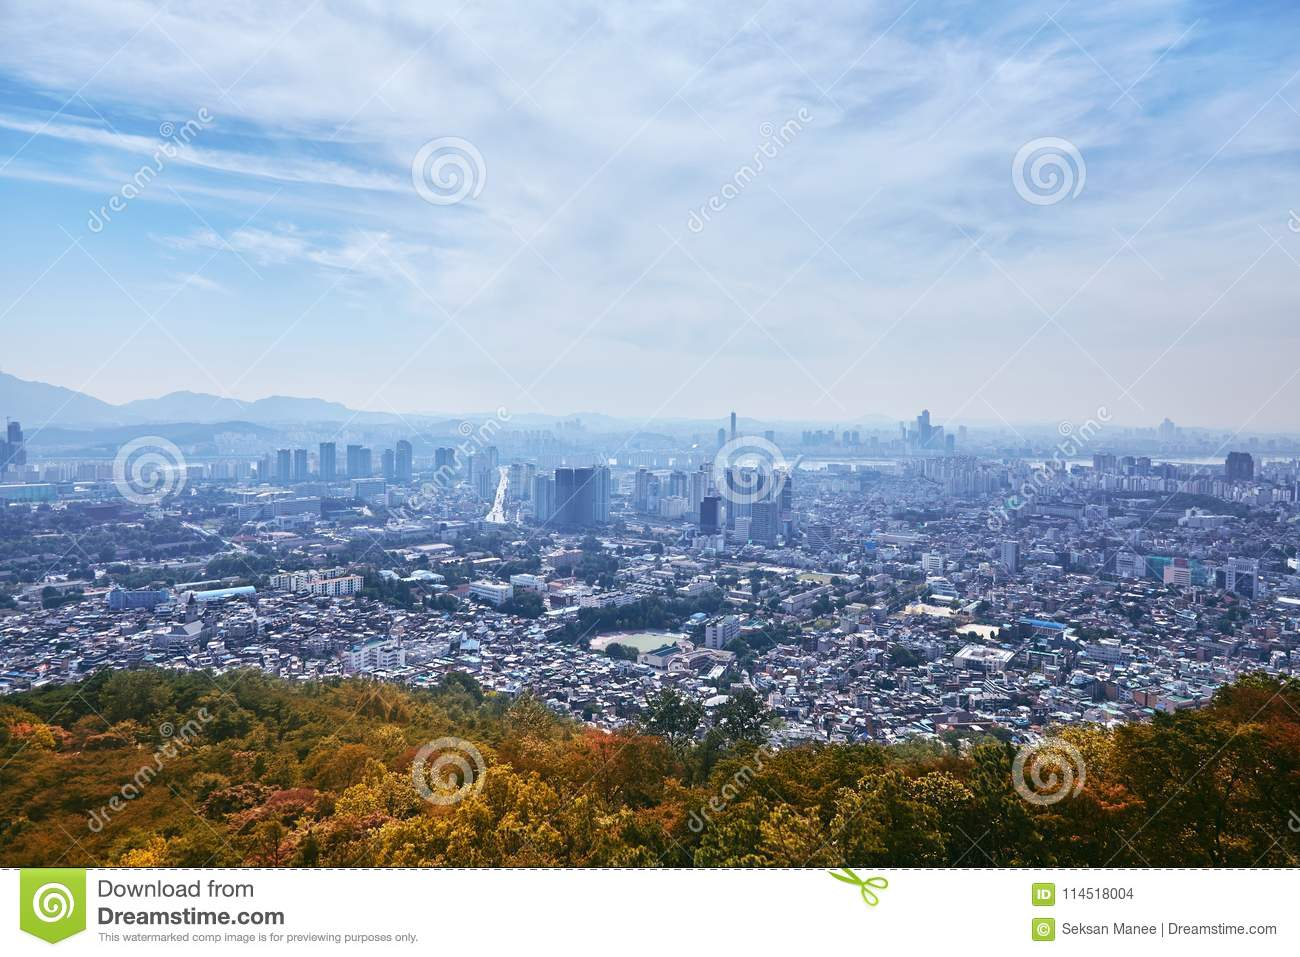 Seoul cityscape, the contrast view between city and nature